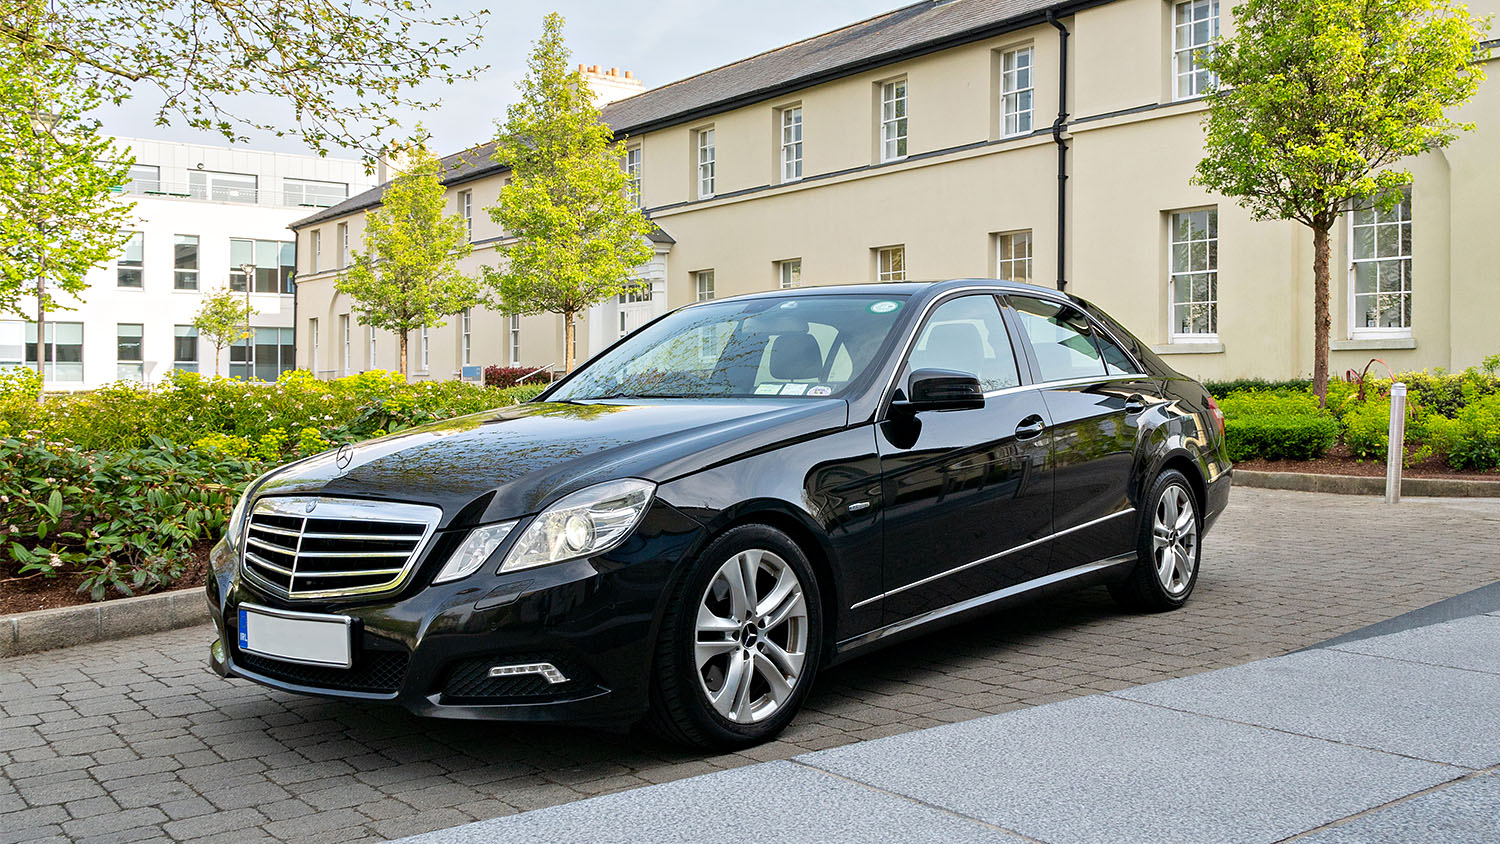 We provide professional, fully insured chauffeurs and vehicles for executive and VIP transfers in Ireland.